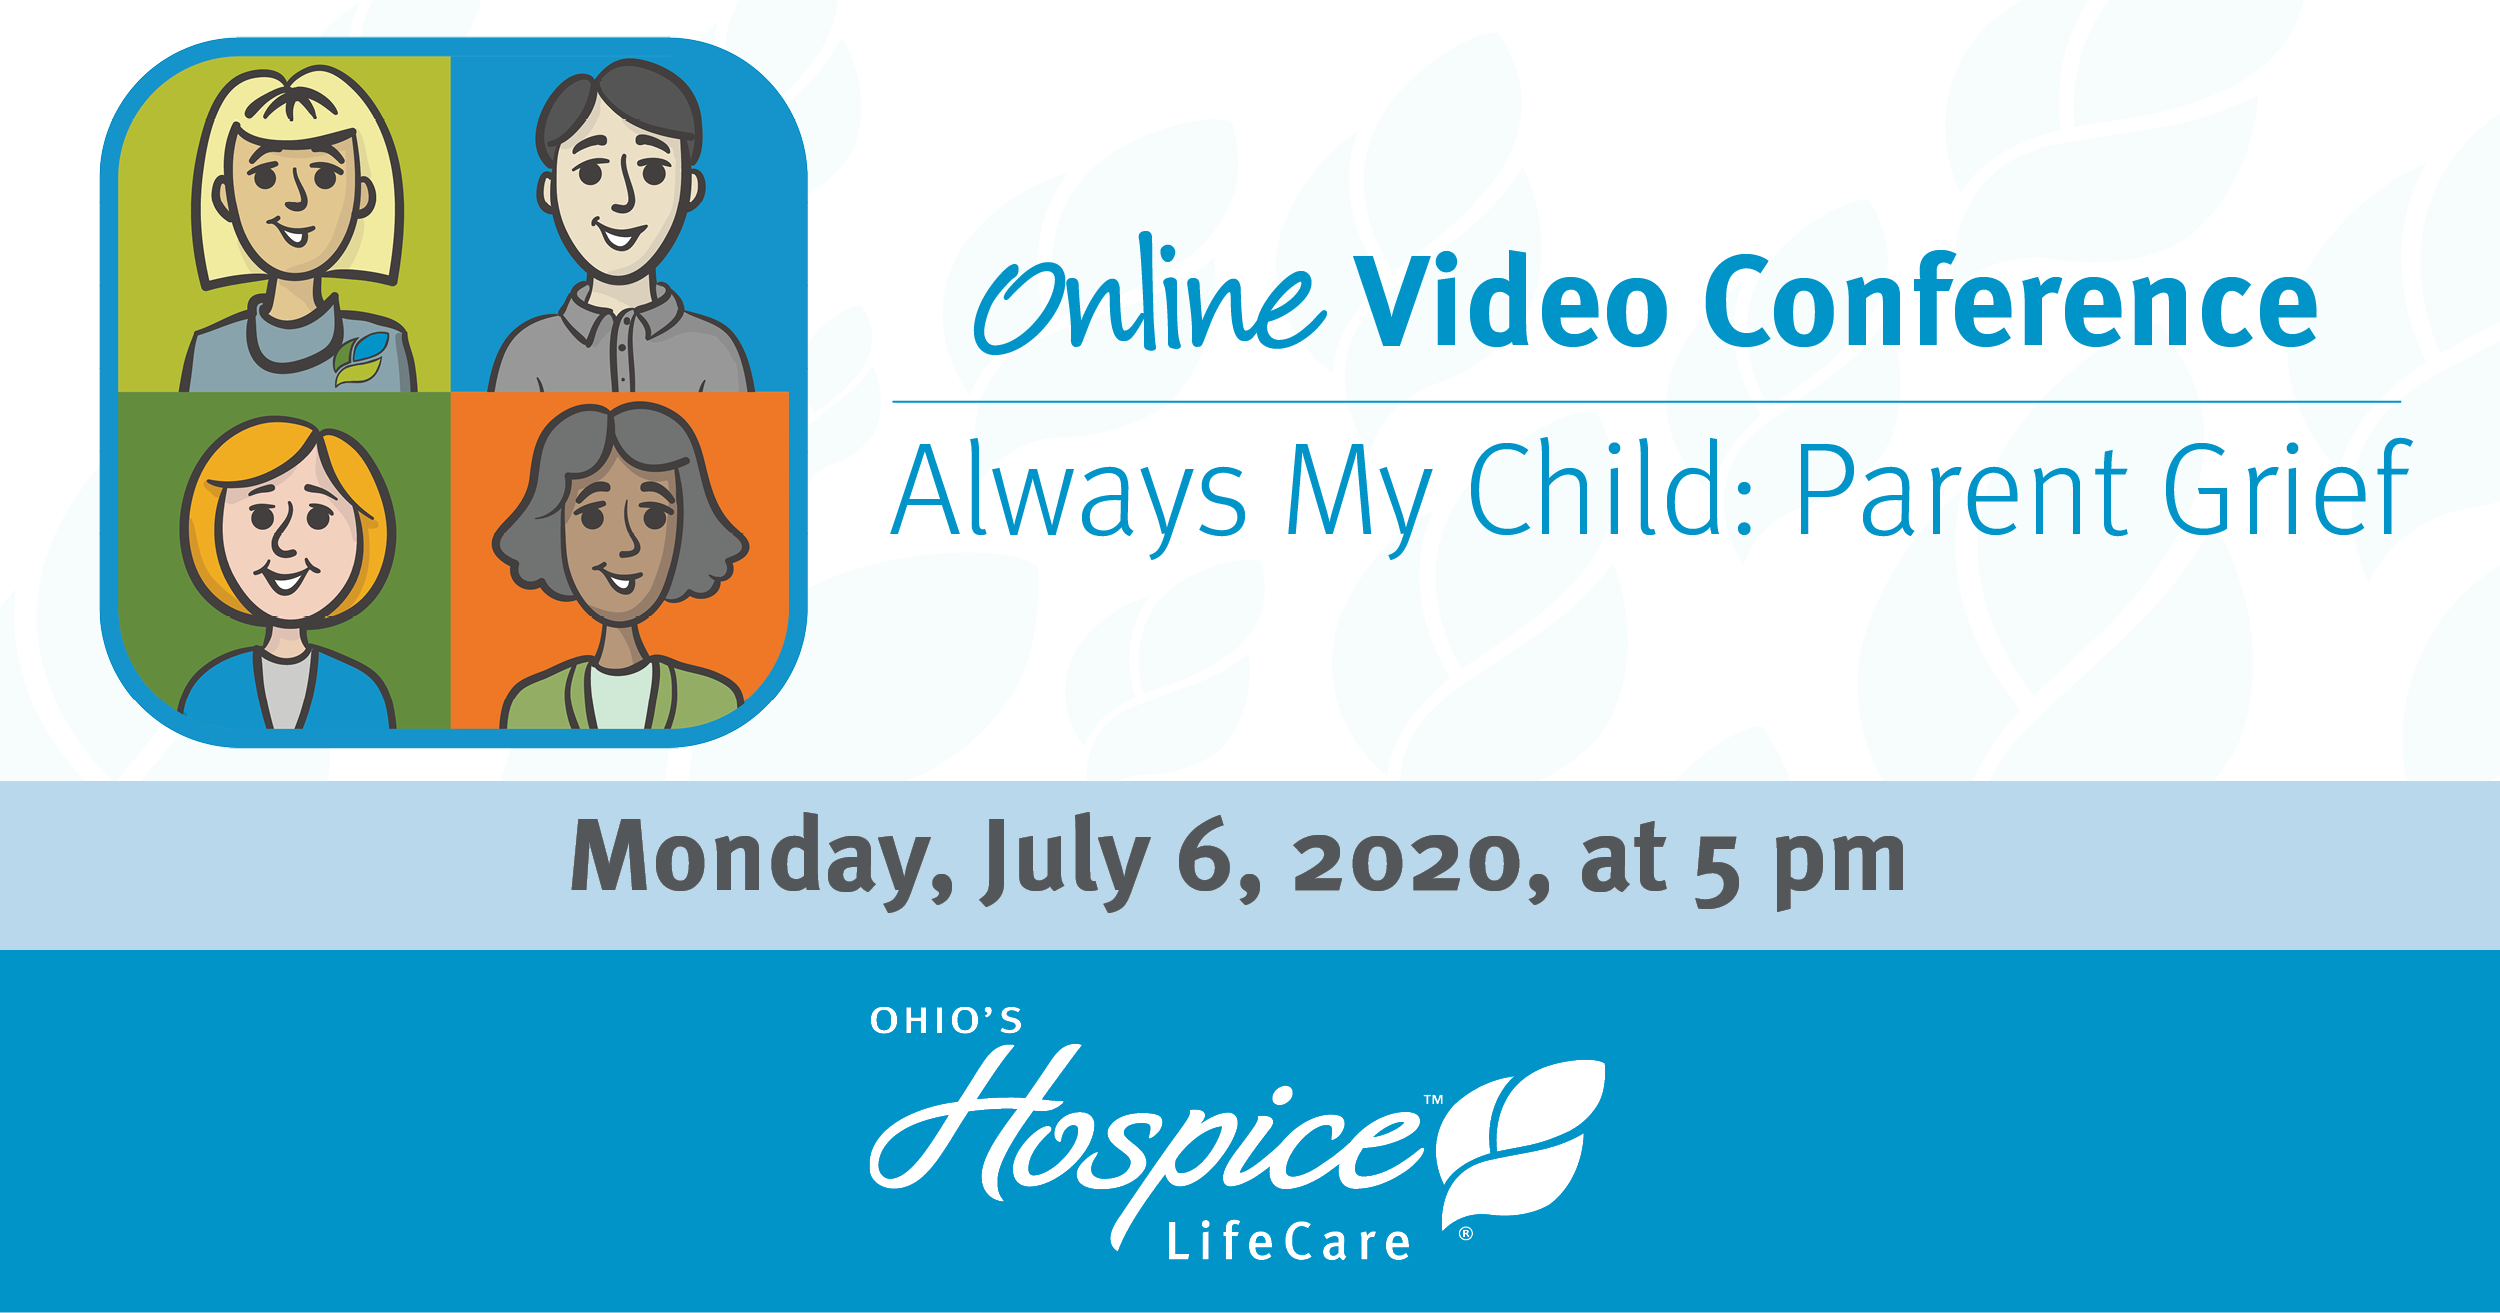 Online Video Conference: Always My Child: Parent Grief